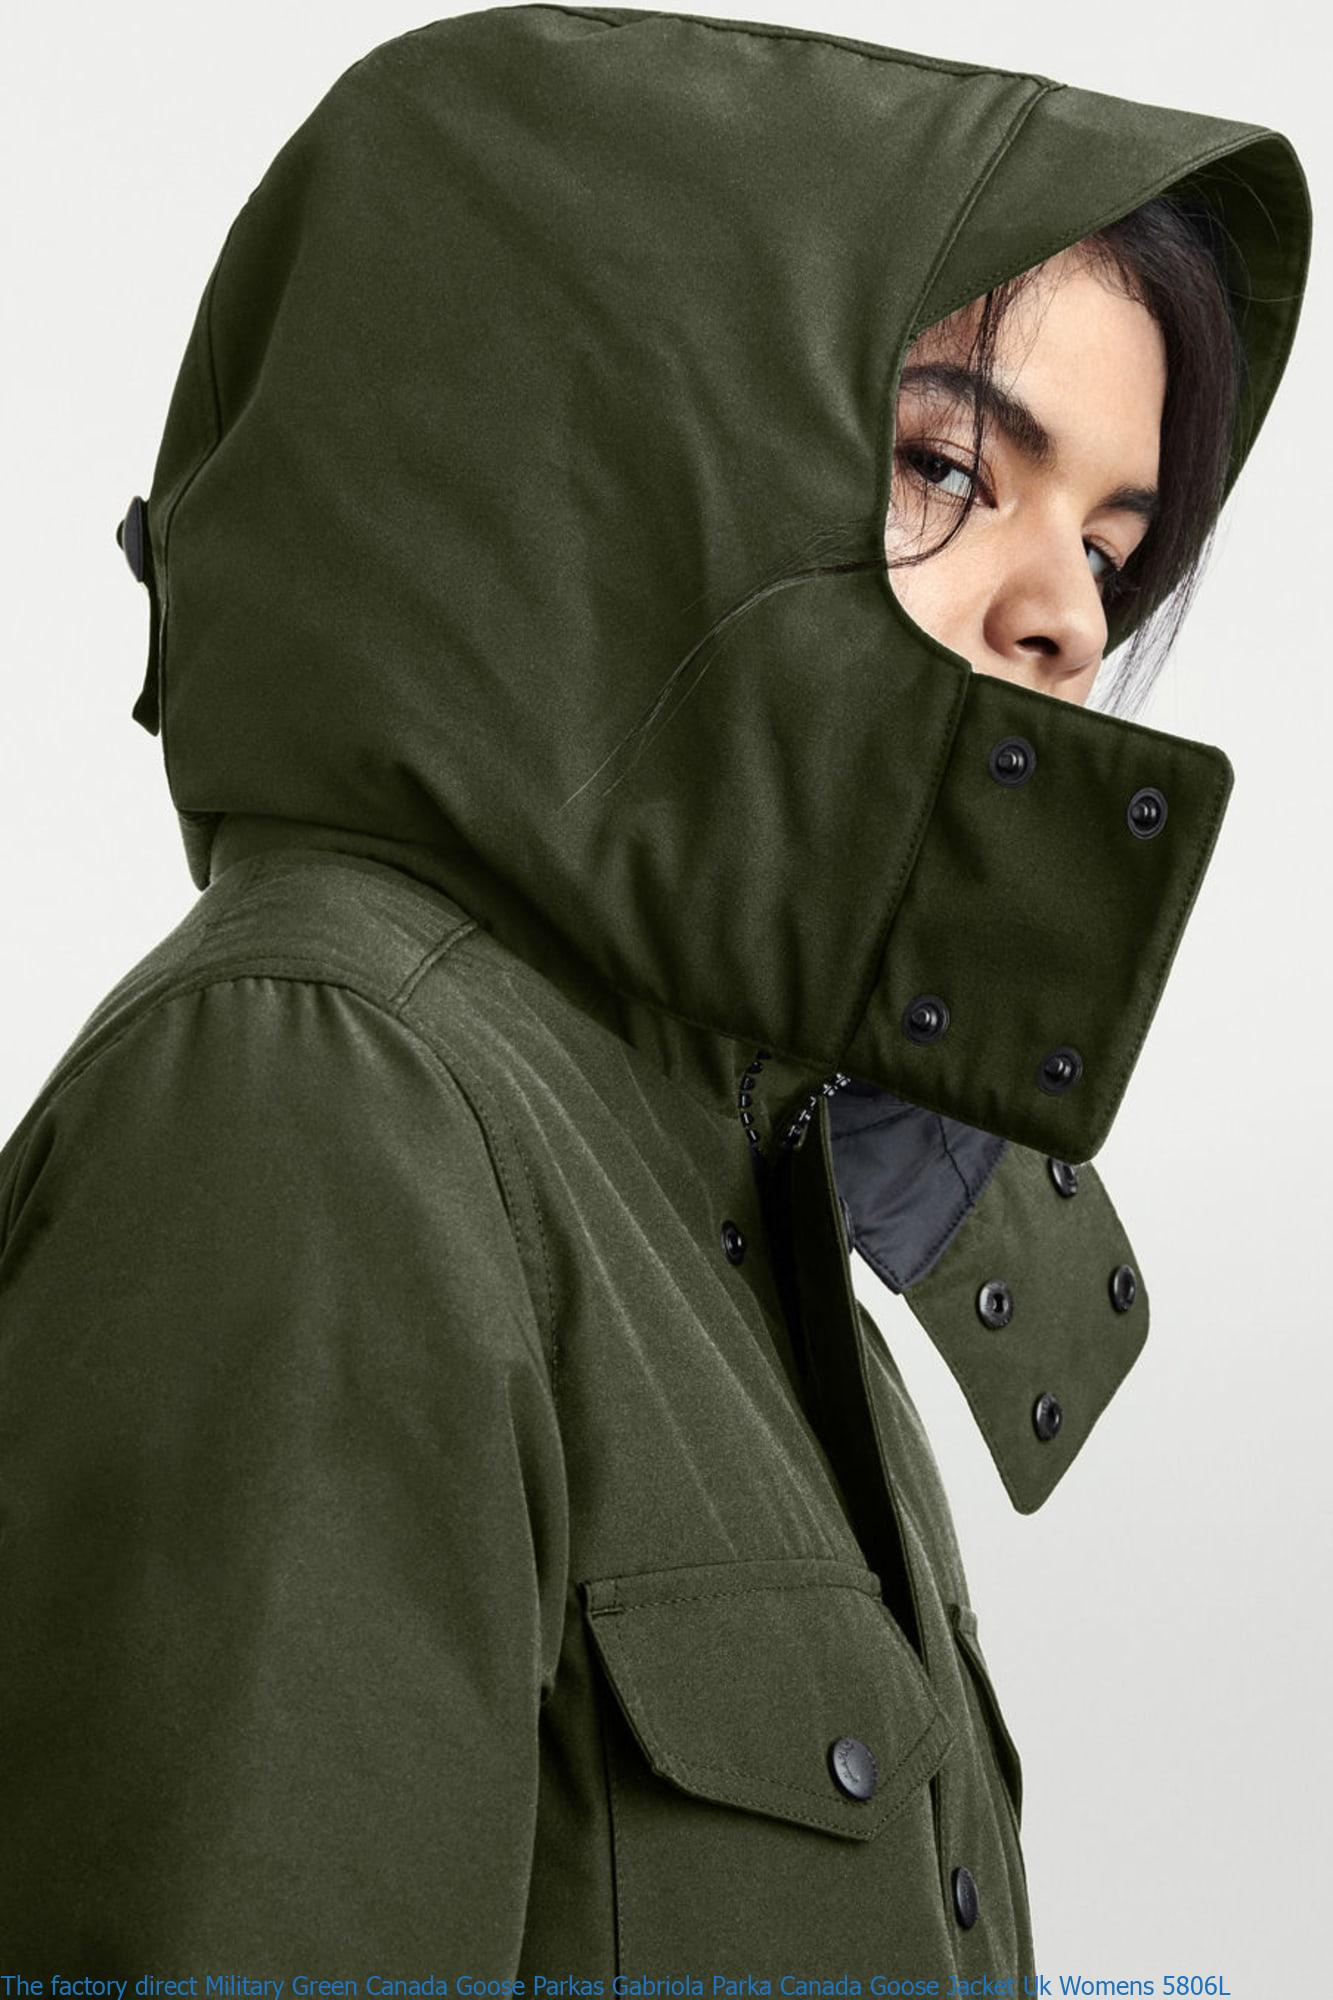 c03473fbbf2 The factory direct Military Green Canada Goose Parkas Gabriola Parka Canada  Goose Jacket Uk Womens 5806L